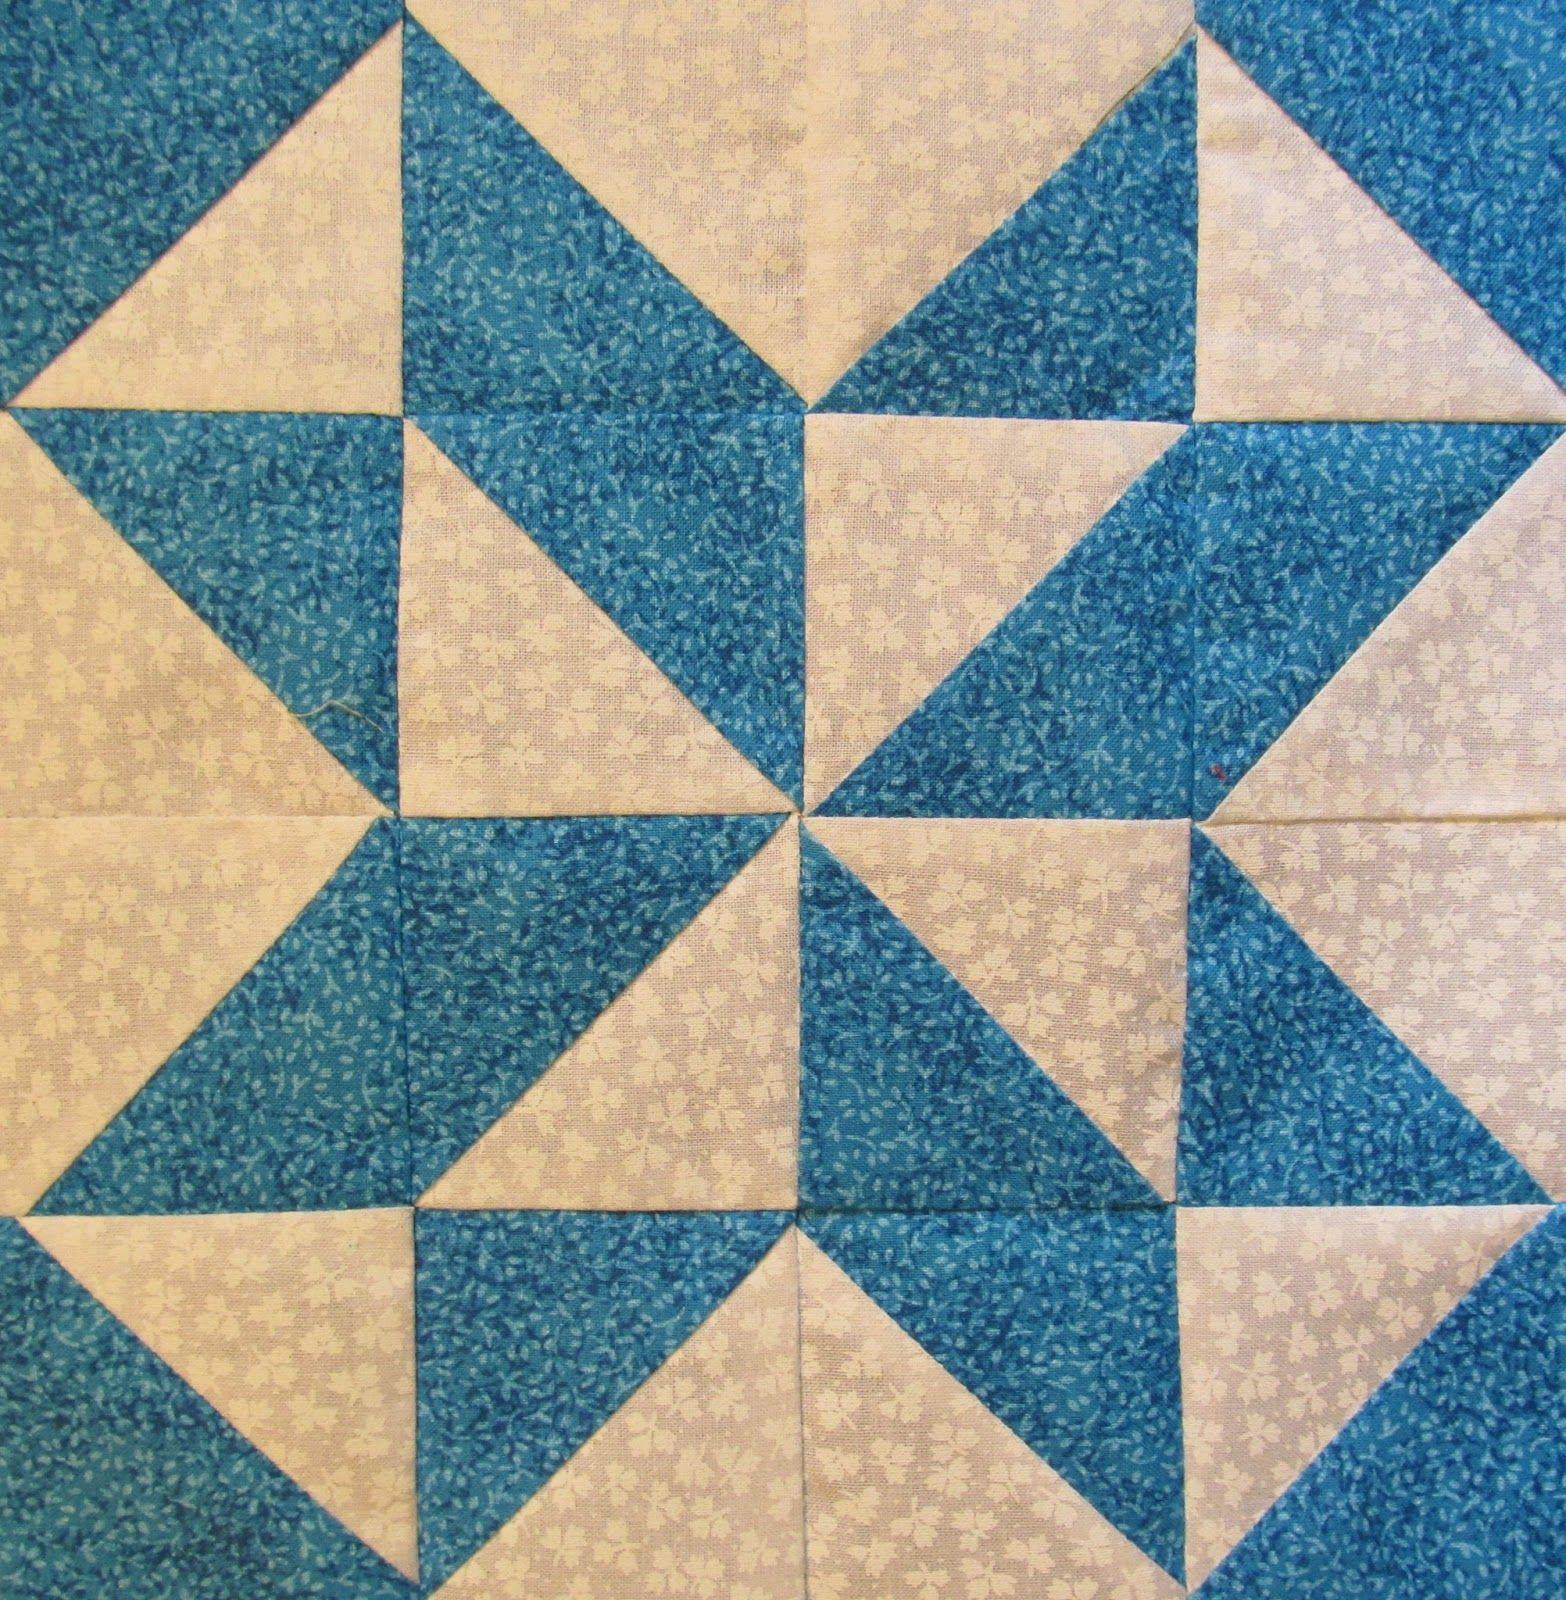 Quilt Designs With Triangles : star quilt pattern using triangles Quilts & things Pinterest Star quilt patterns, Star ...